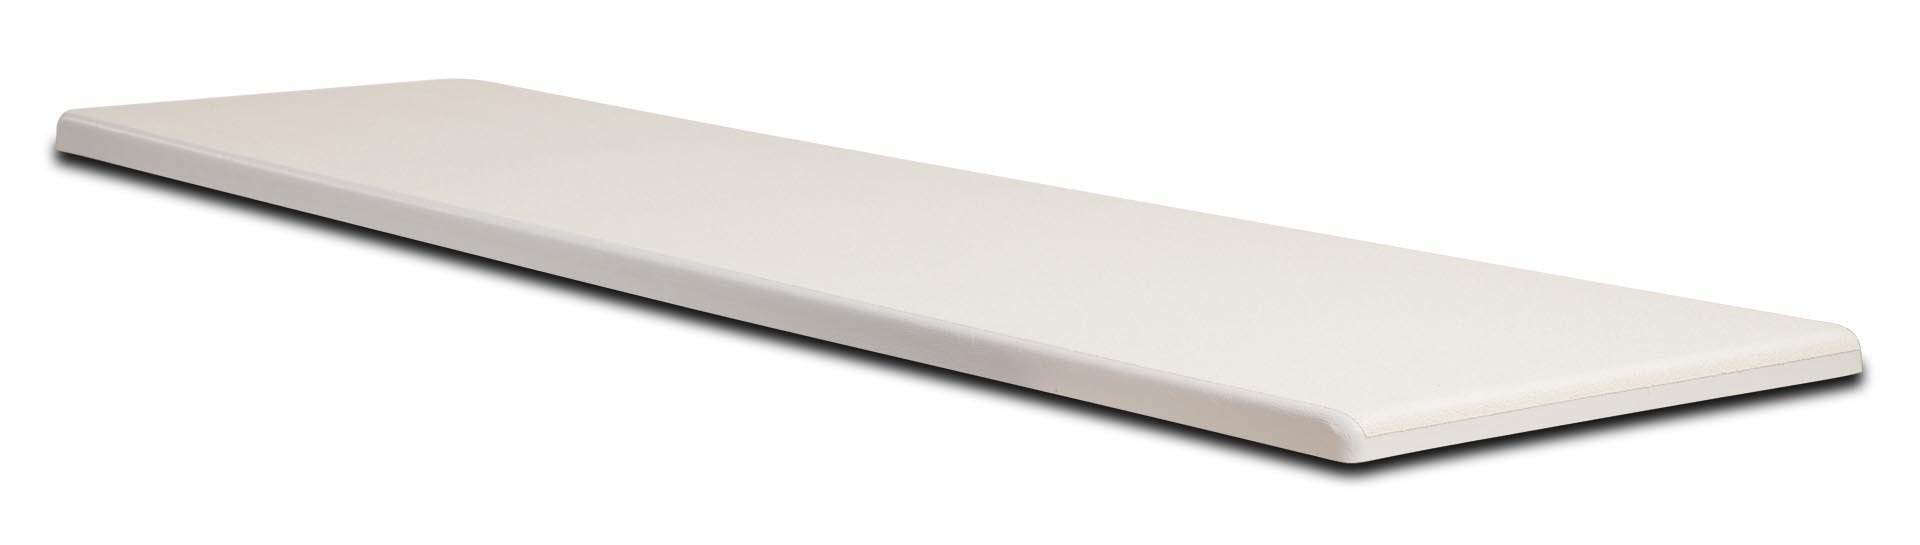 S.R. Smith 66-209-206S2-1 Glas-Hide Replacement Diving Board, 6-Feet, Radiant White by S.R. Smith